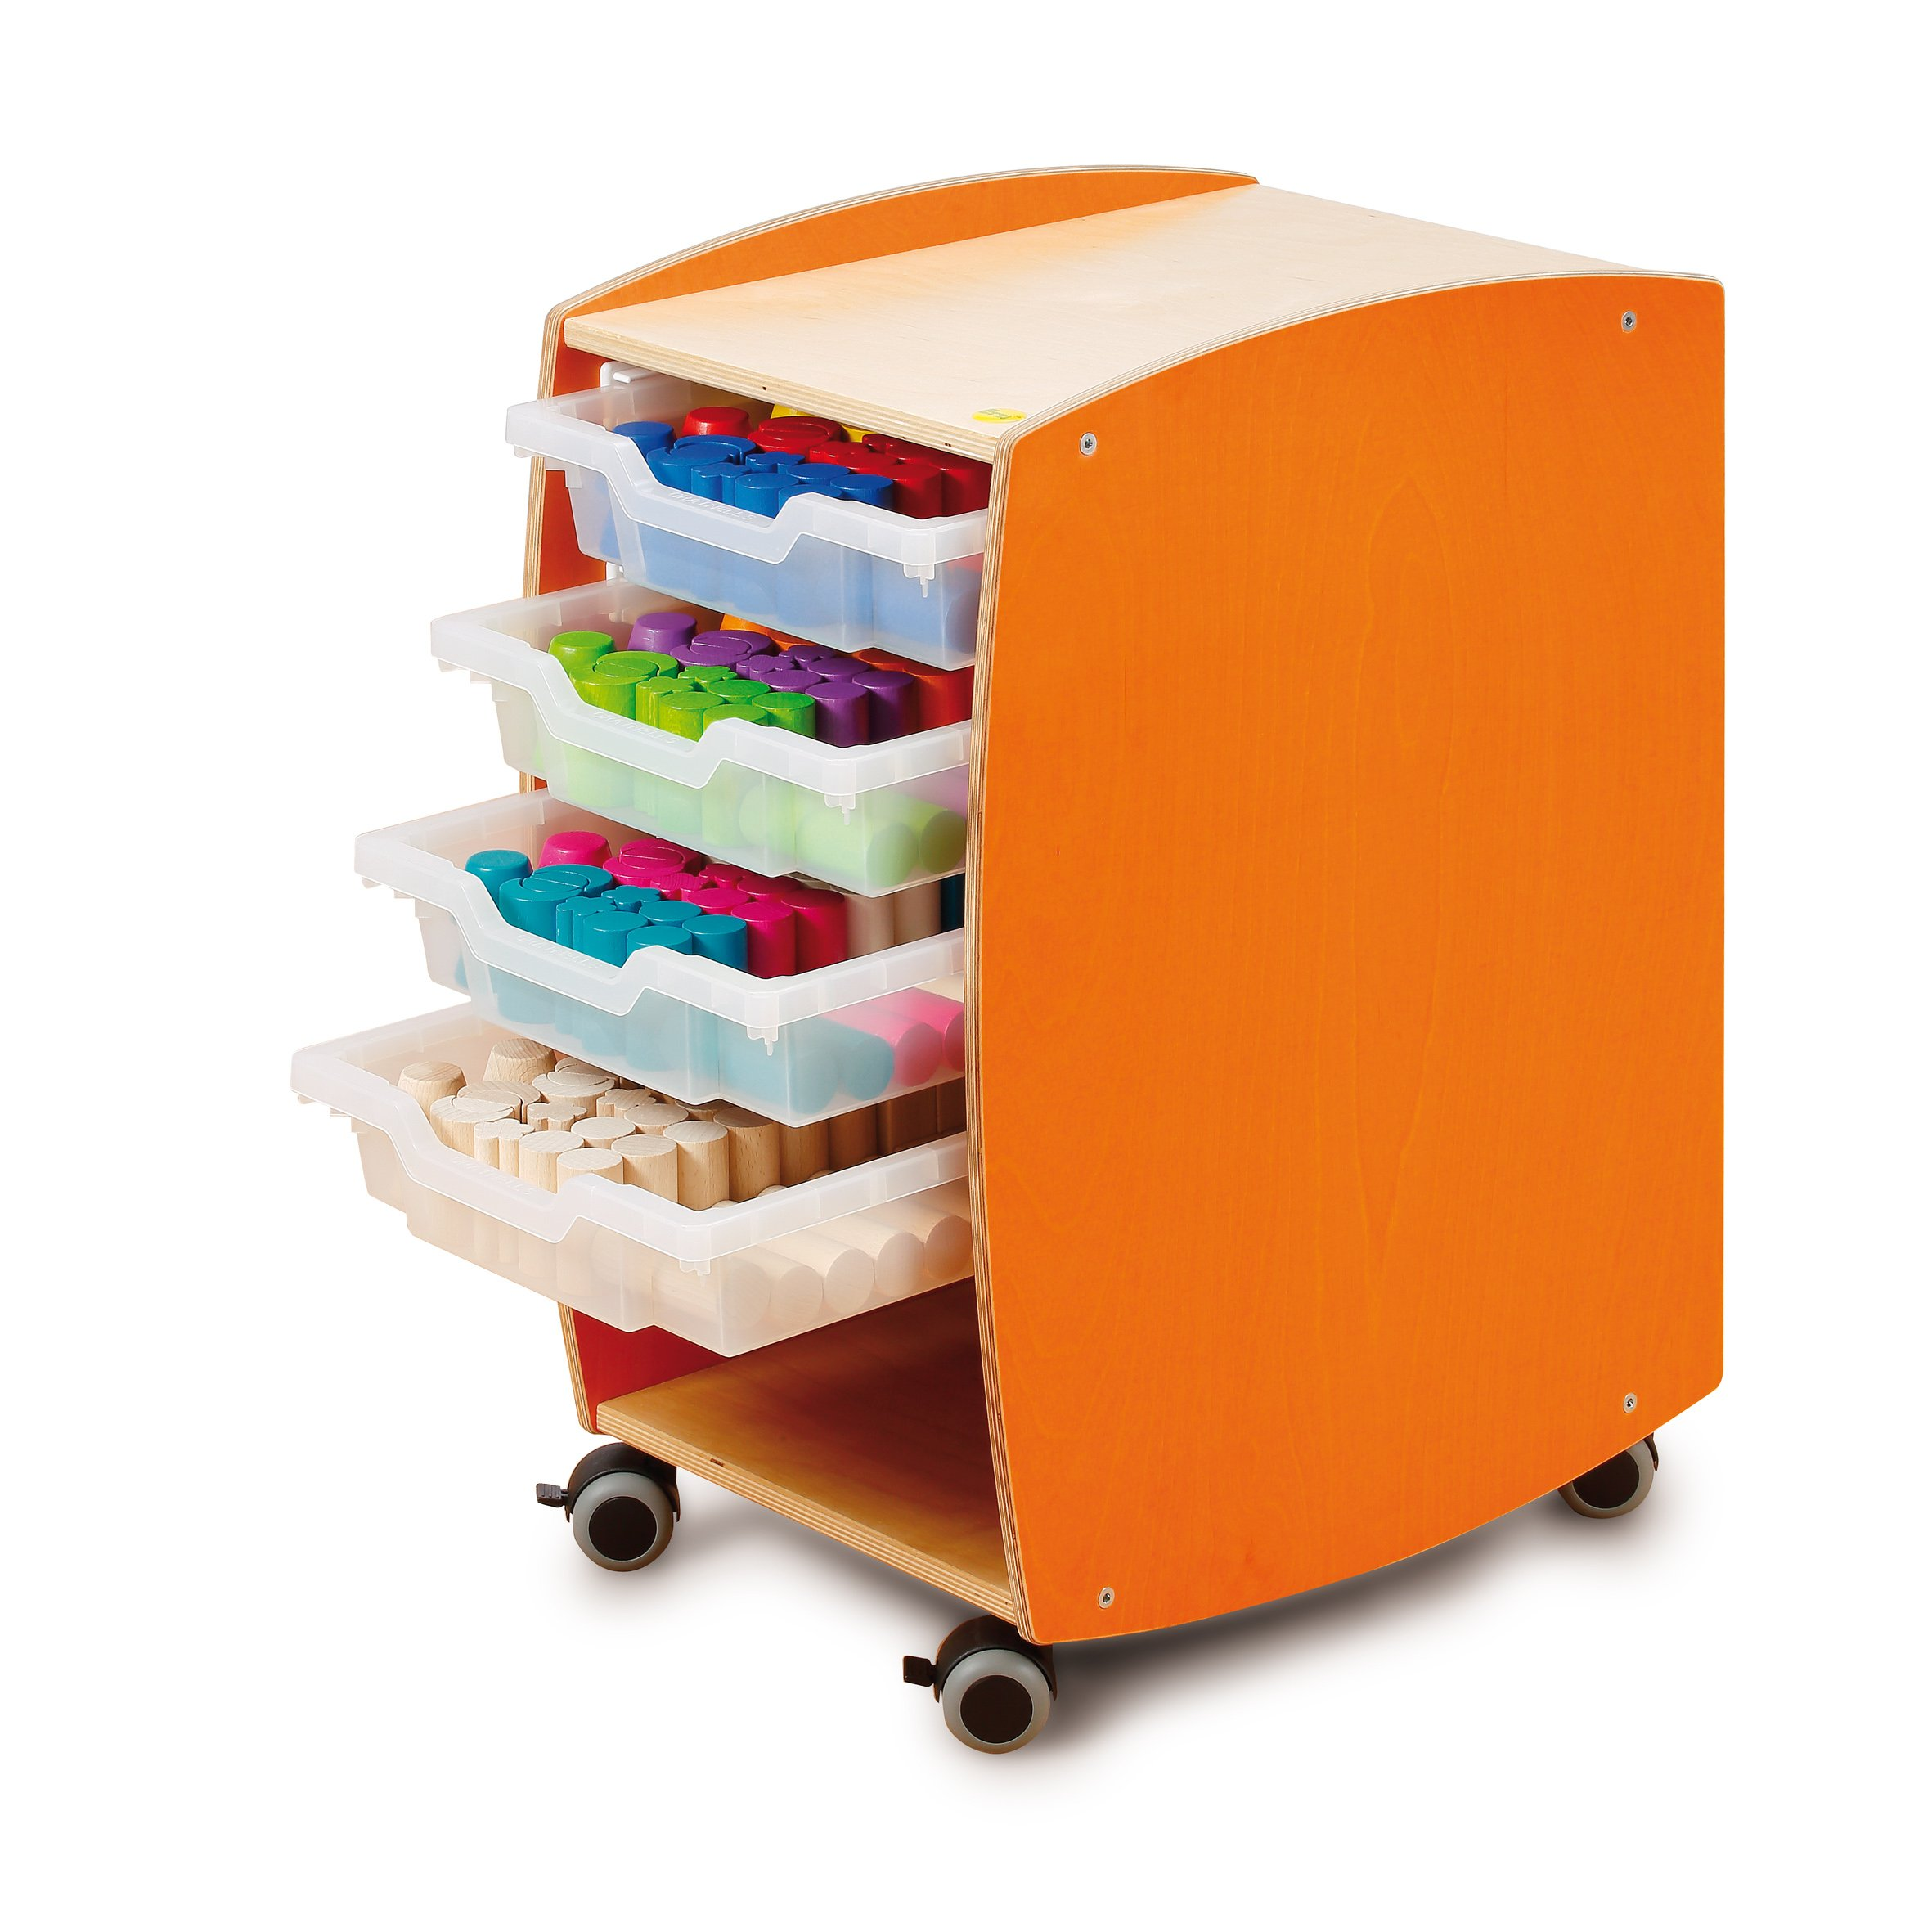 Erzi 49 5 x 34 5 x 66 5 cm German Wooden Toy Learning Trolley